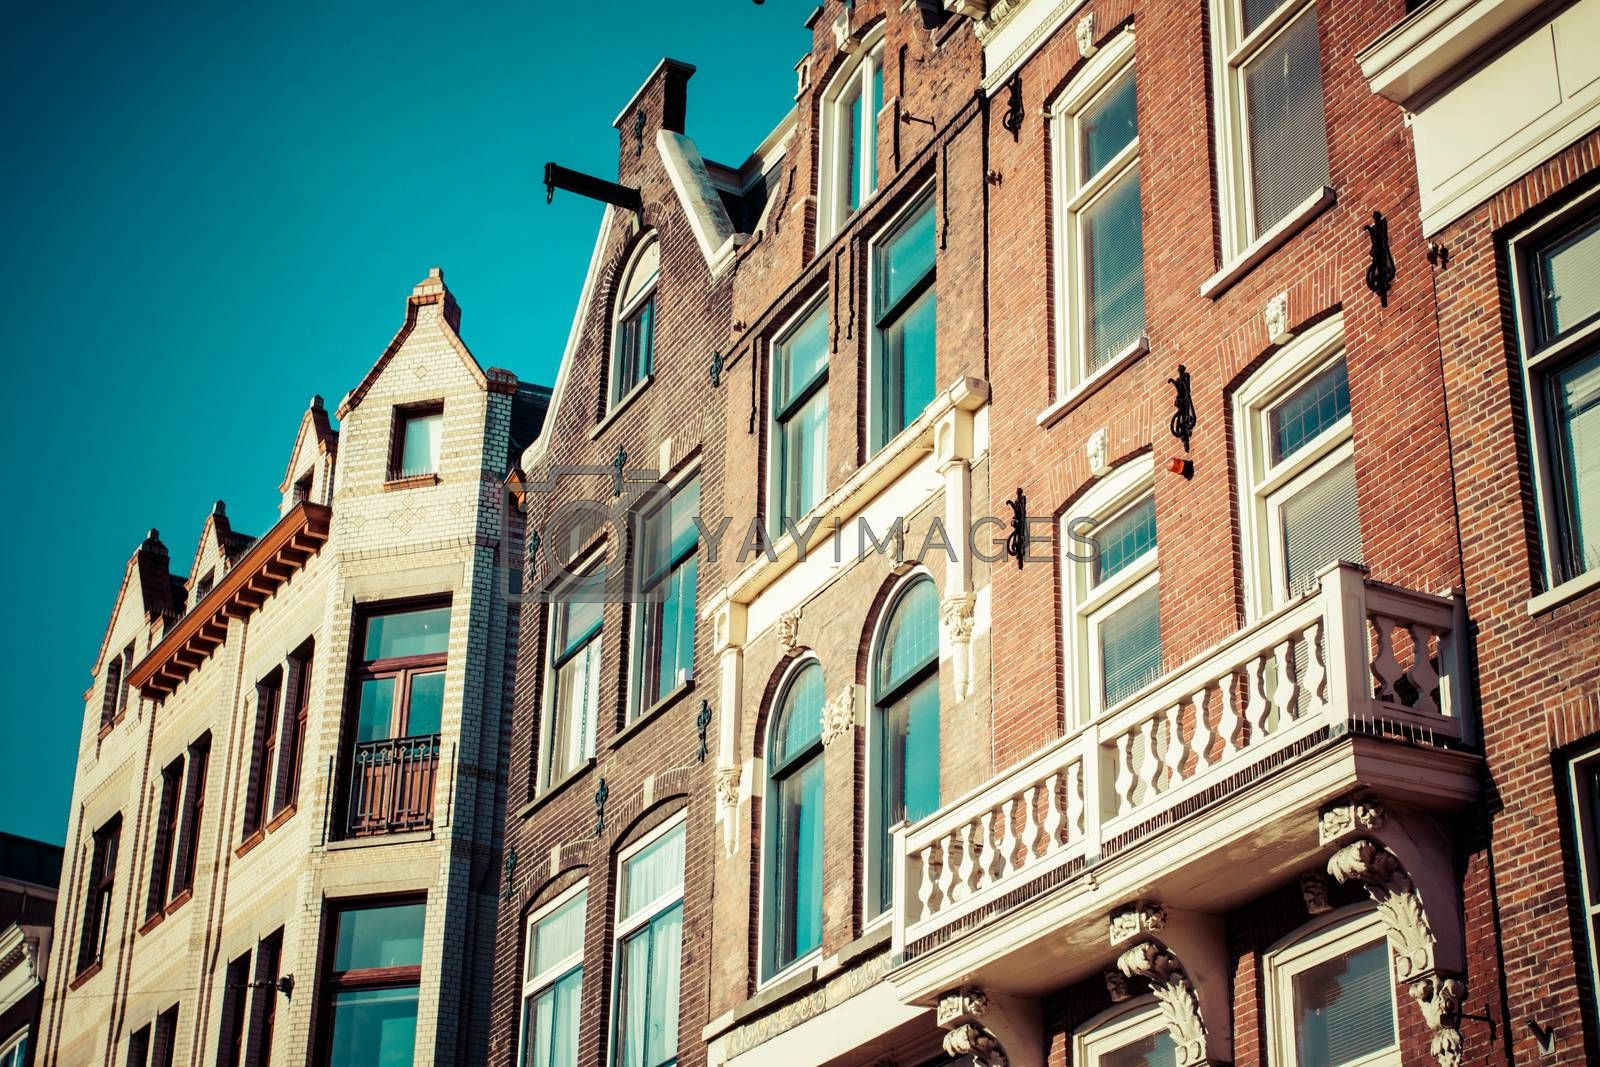 Traditional architecture in Amsterdam, the Netherlands.